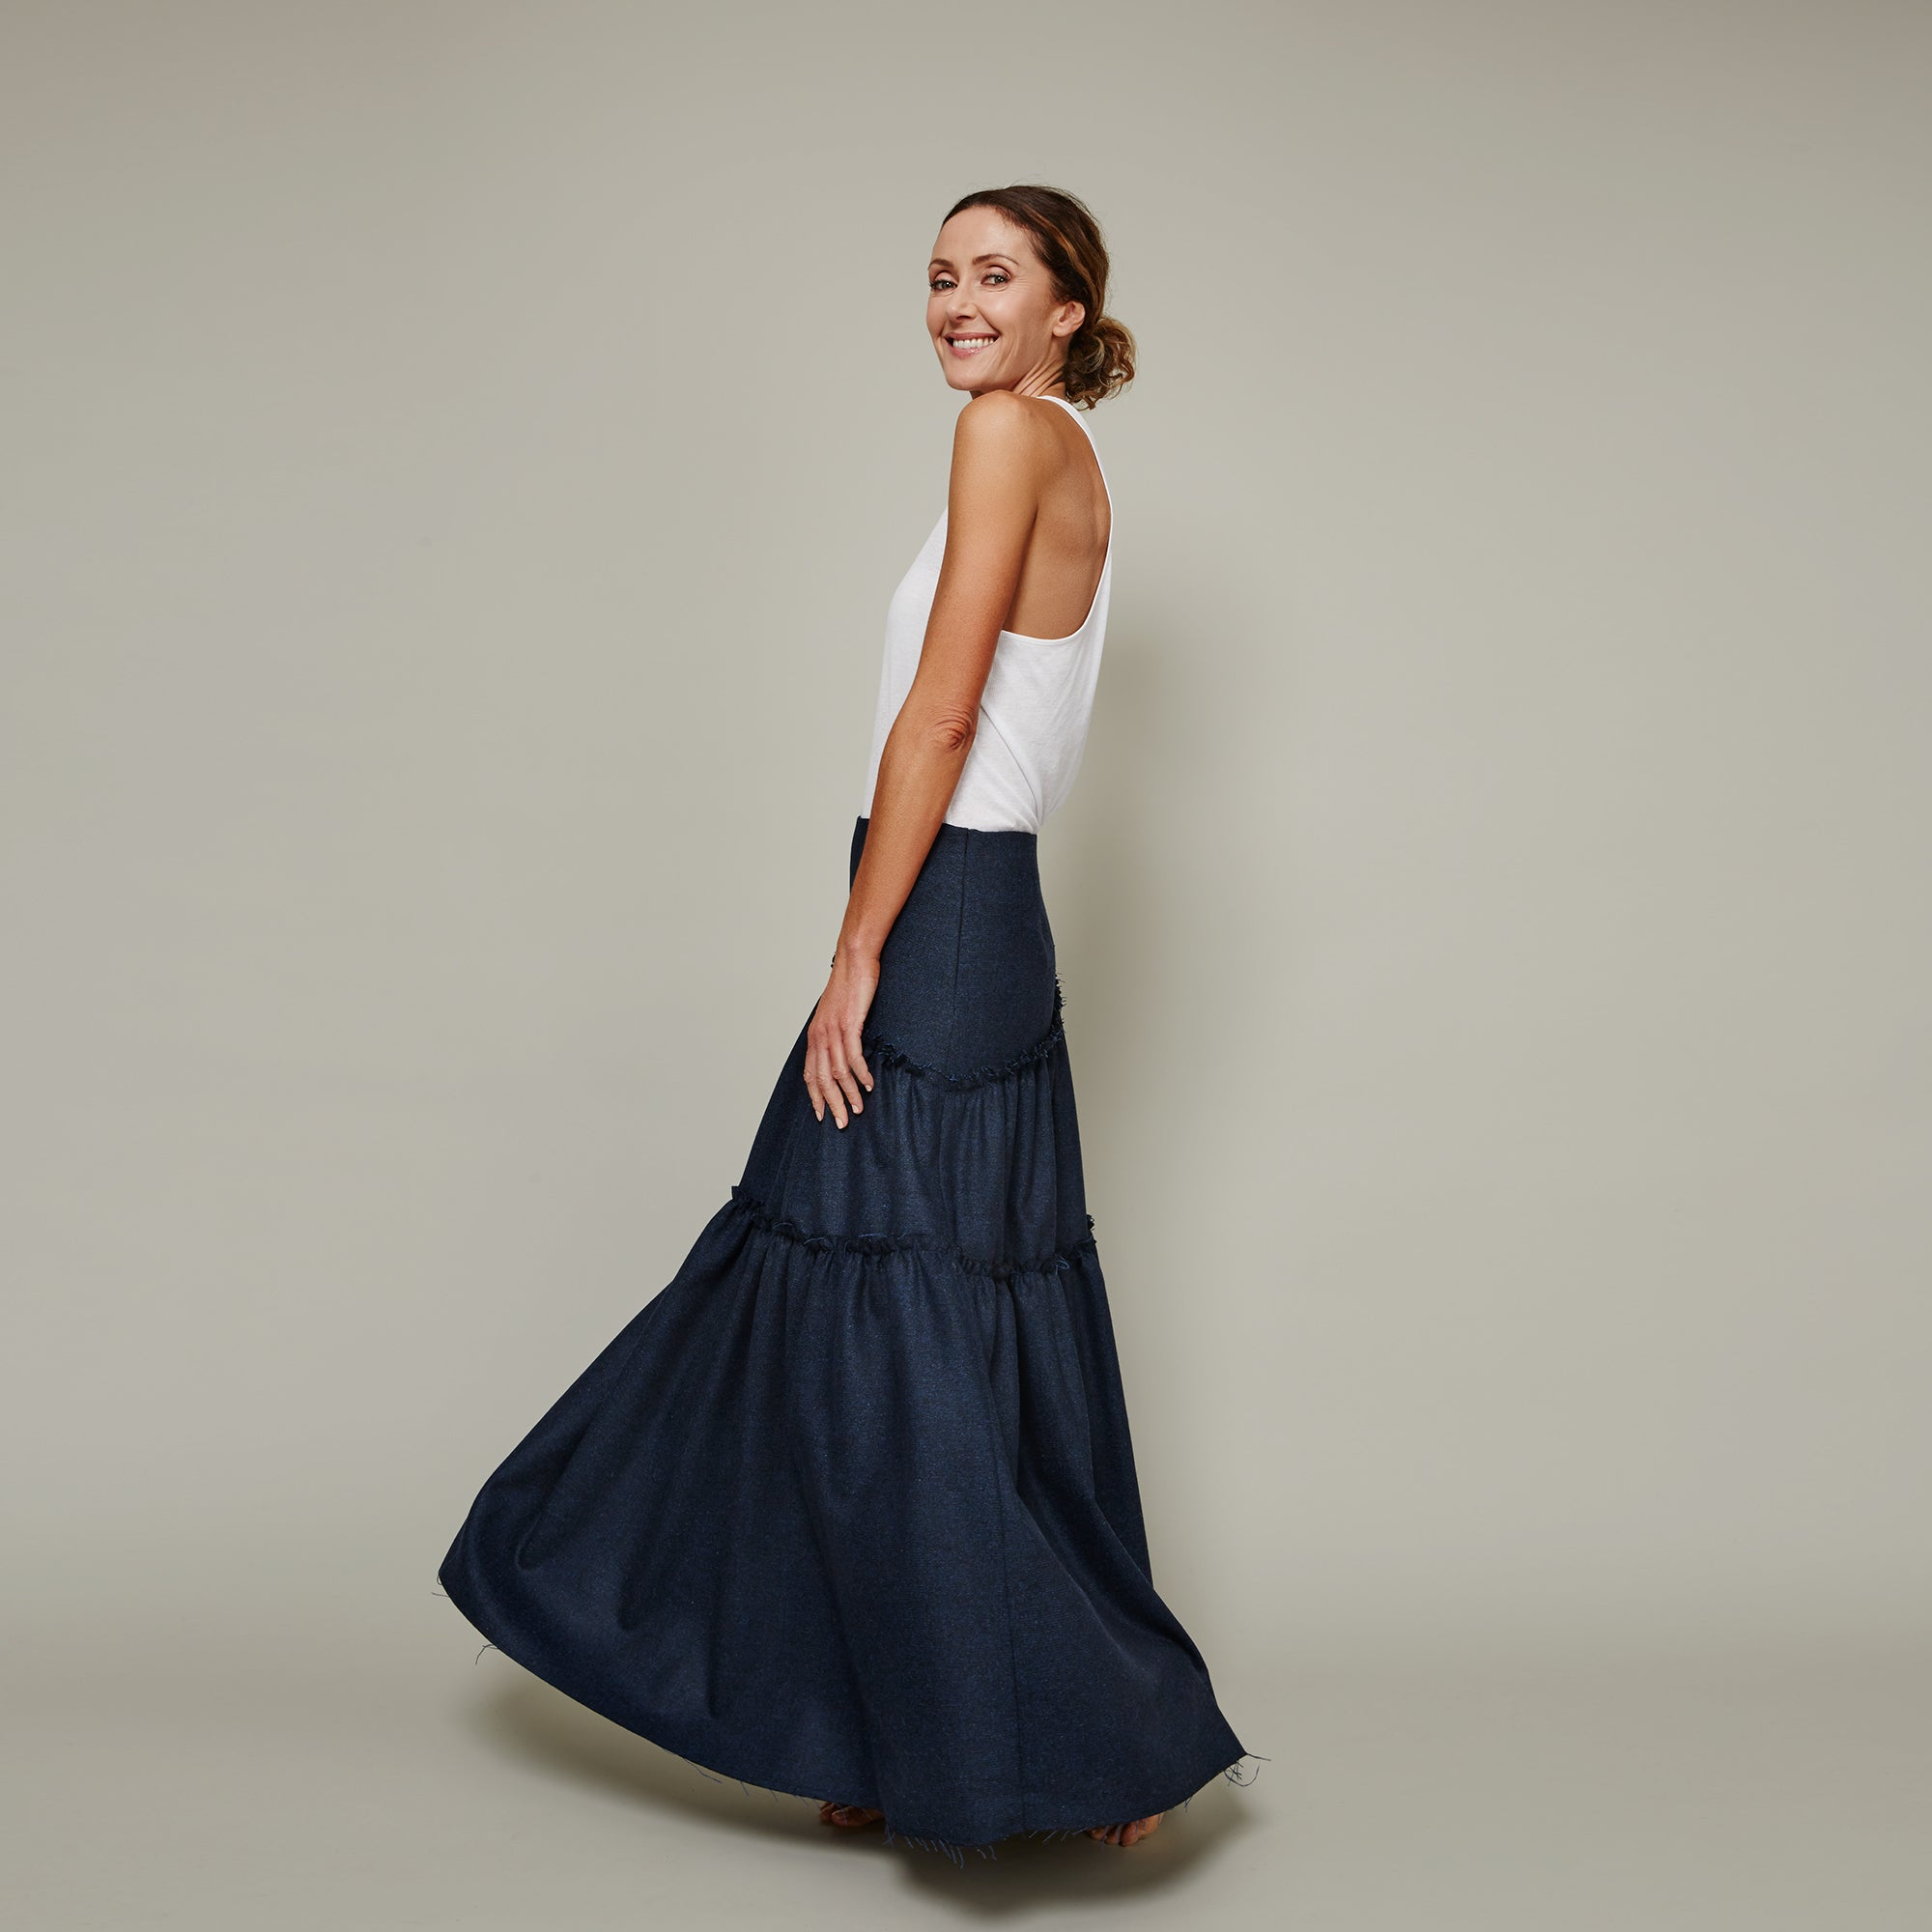 Rumball Ruffle Skirt